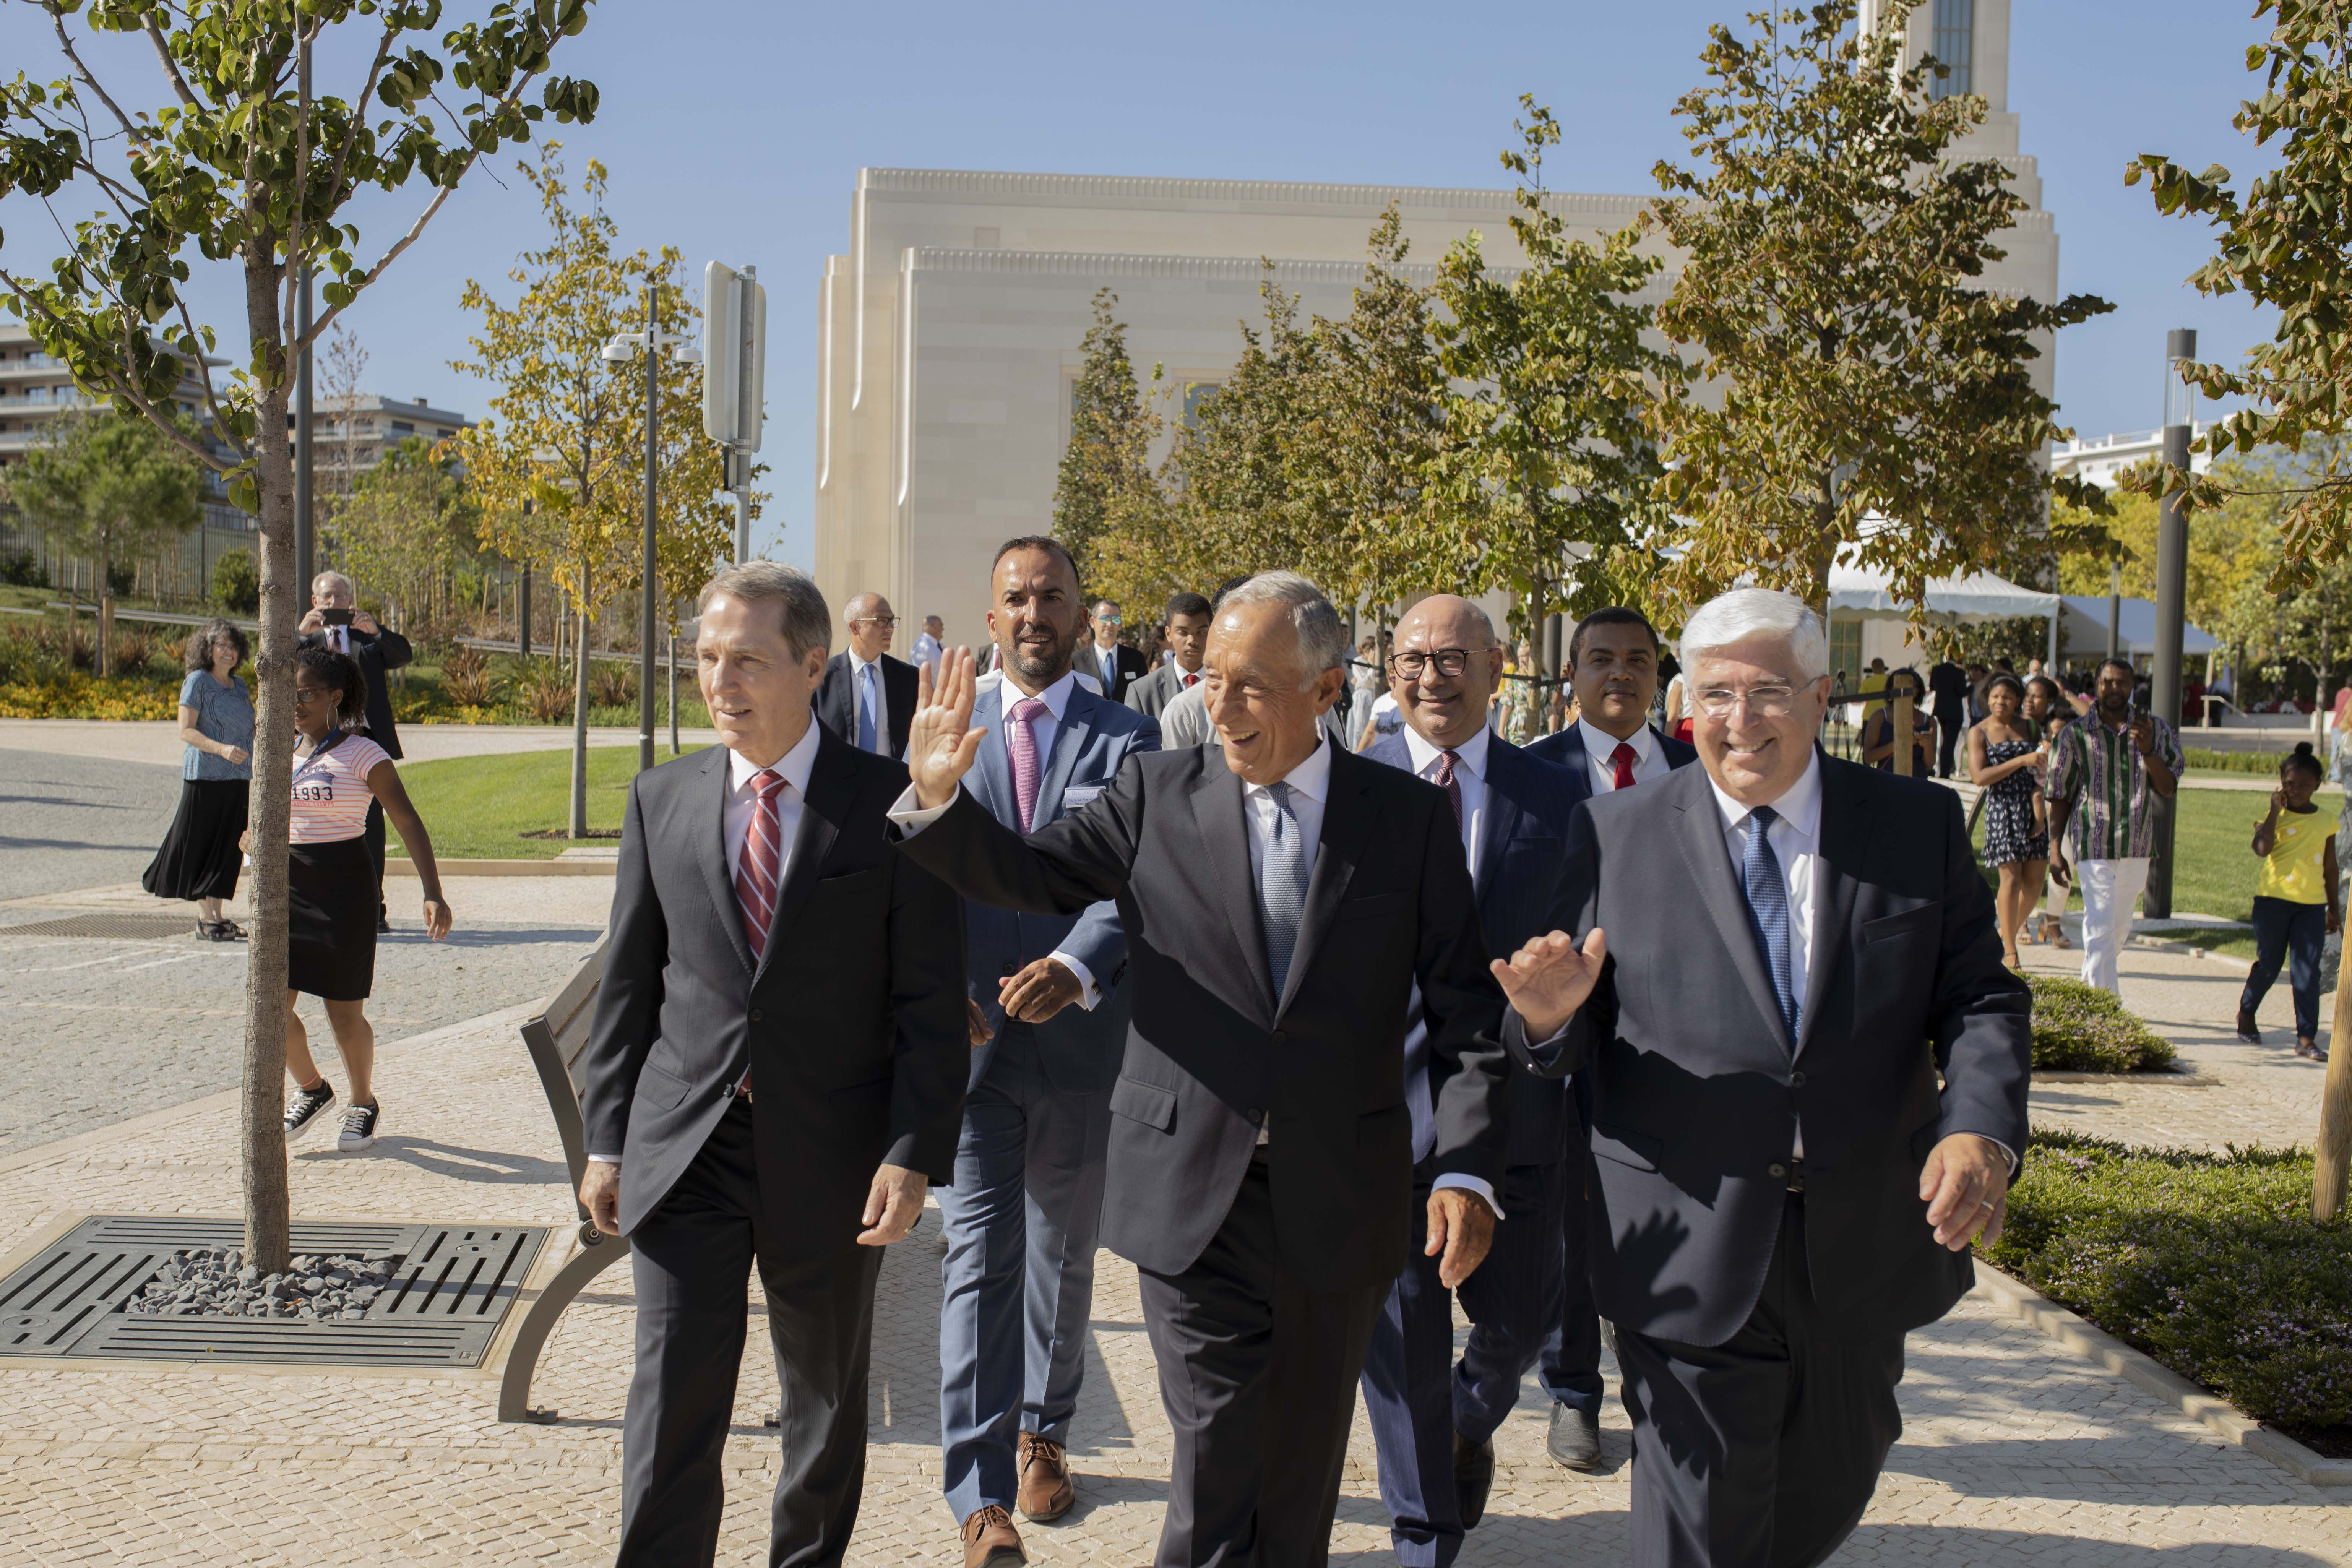 Marcelo Rebelo de Sousa, president of Portugal, tours the Lisbon Portugal Temple grounds on Aug. 29, 2019.